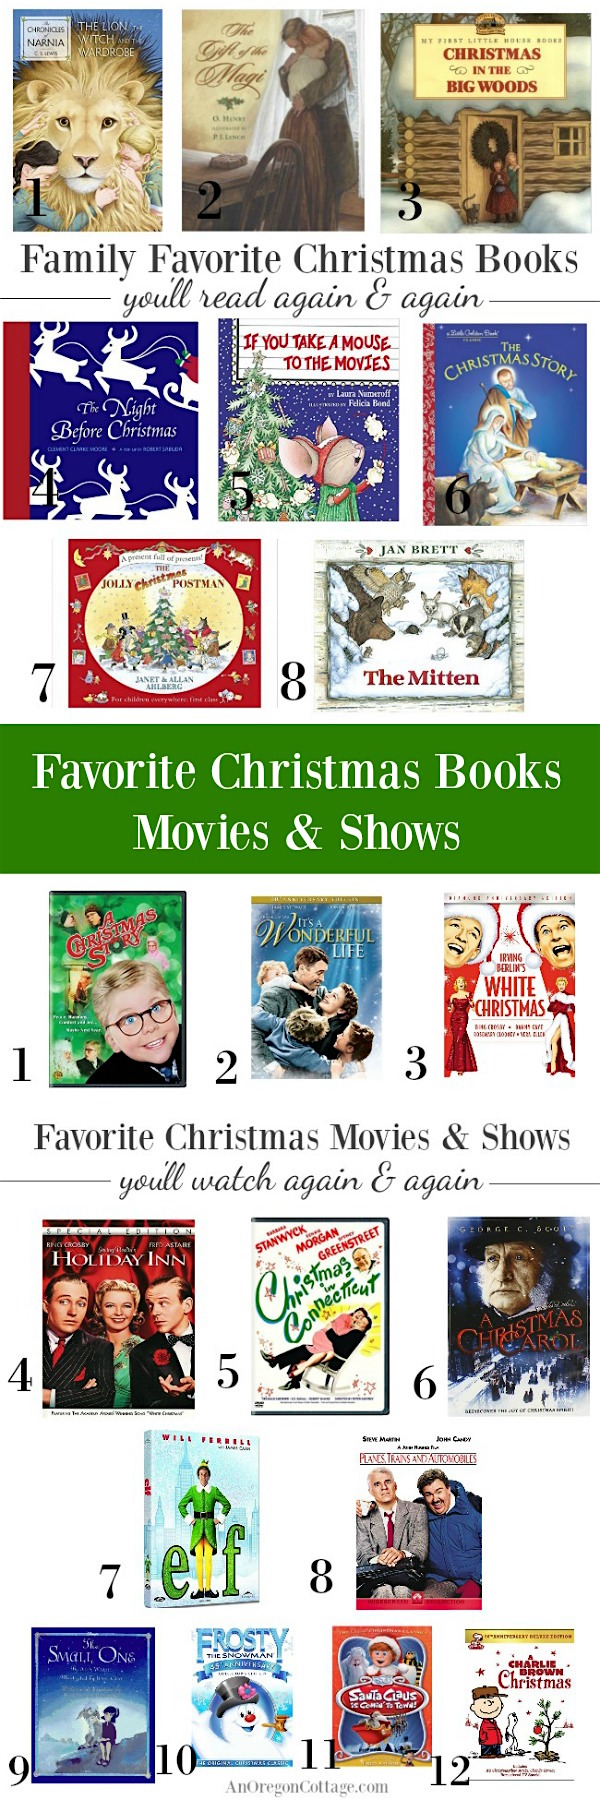 Family favorite Christmas books, movies and TV shows your whole family will love from AnOregonCottage.com